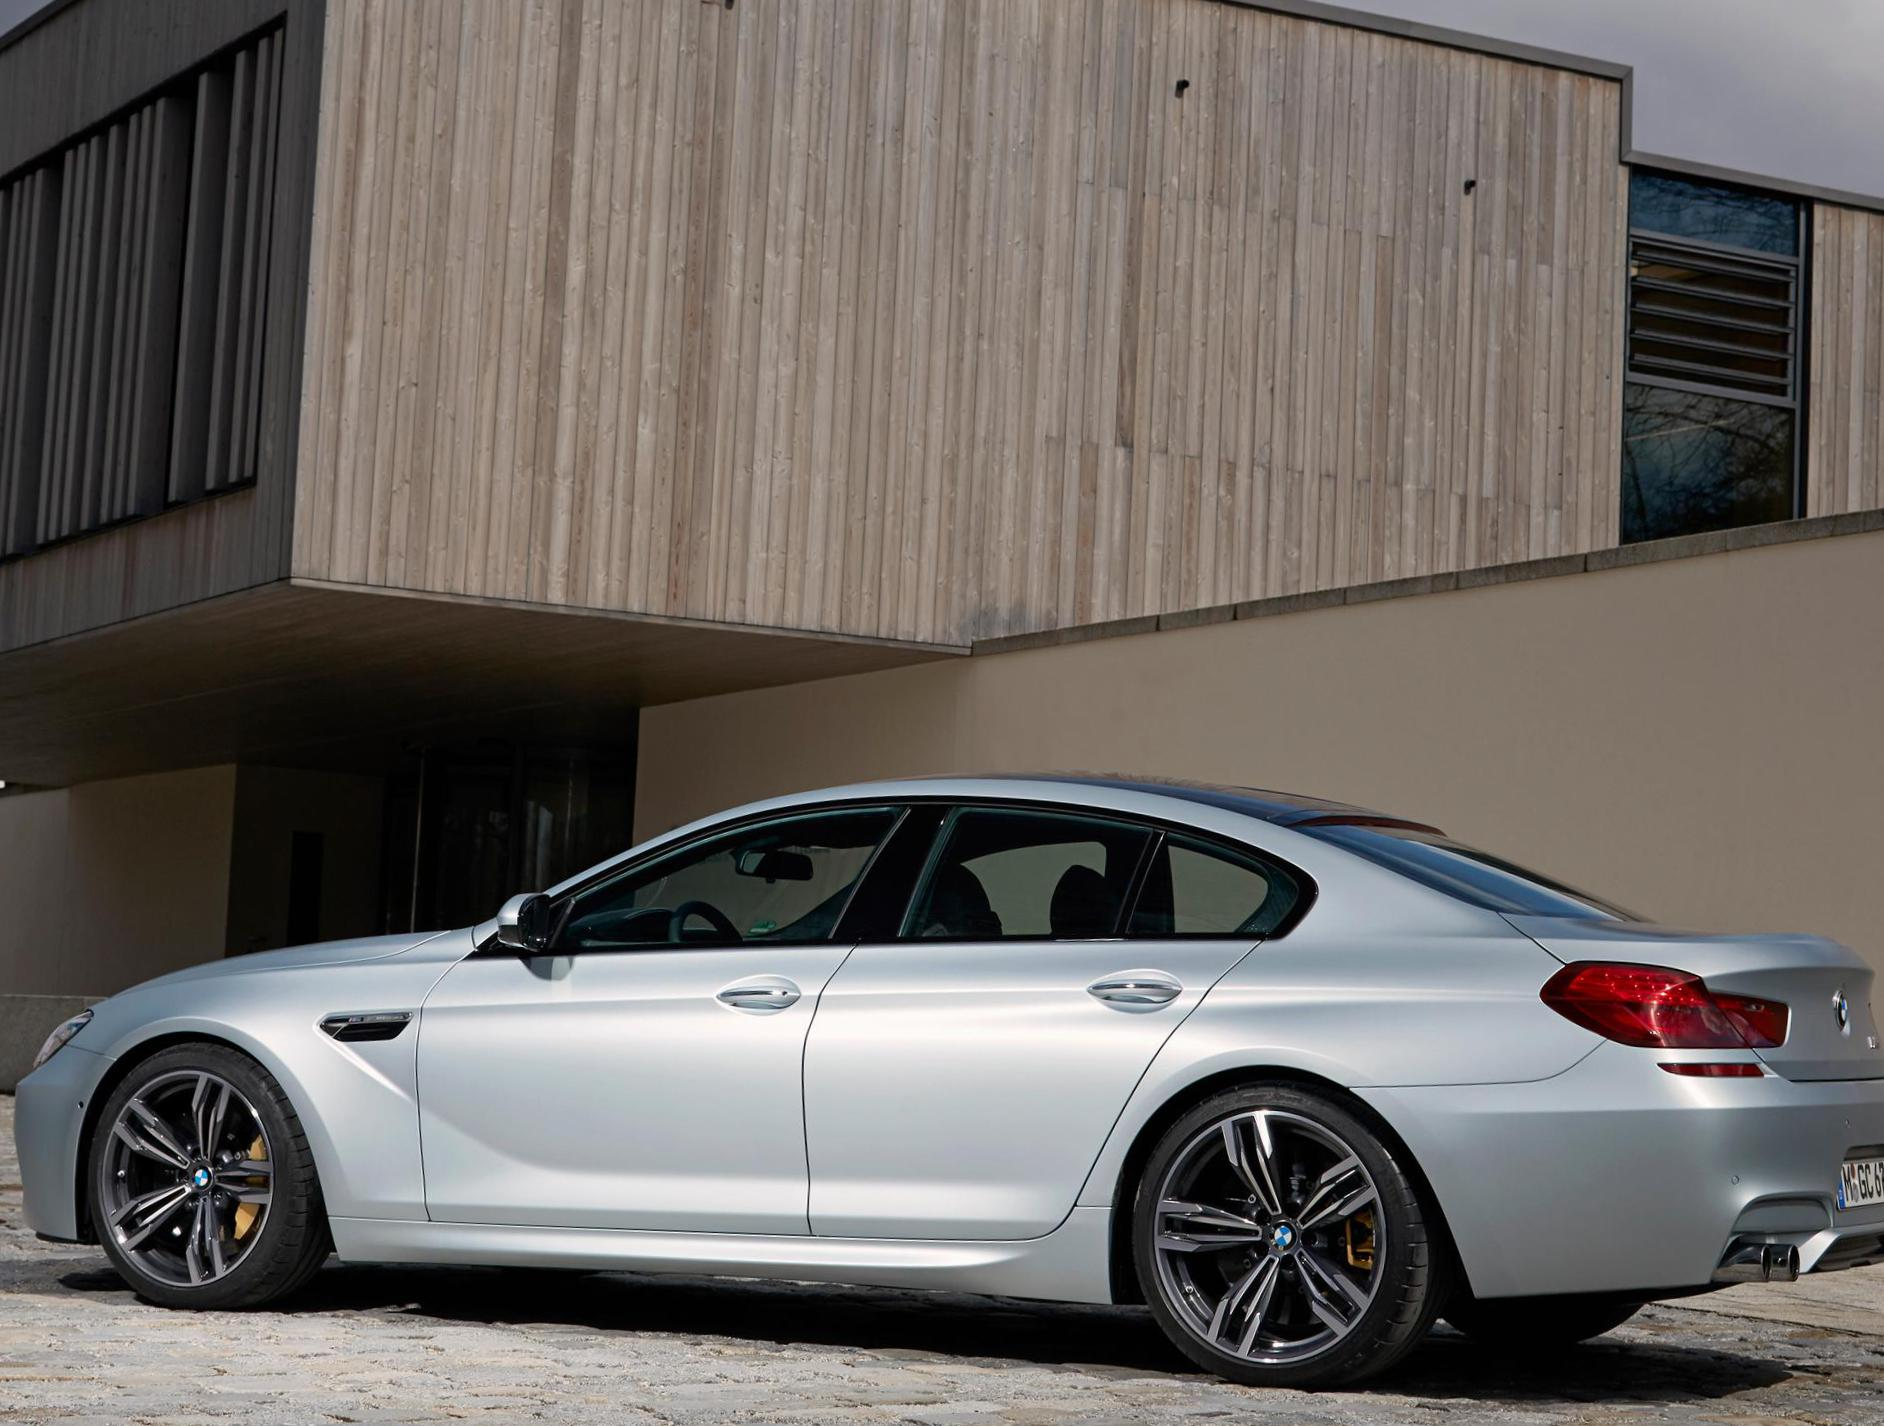 BMW M6 Gran Coupe (F06) price hatchback